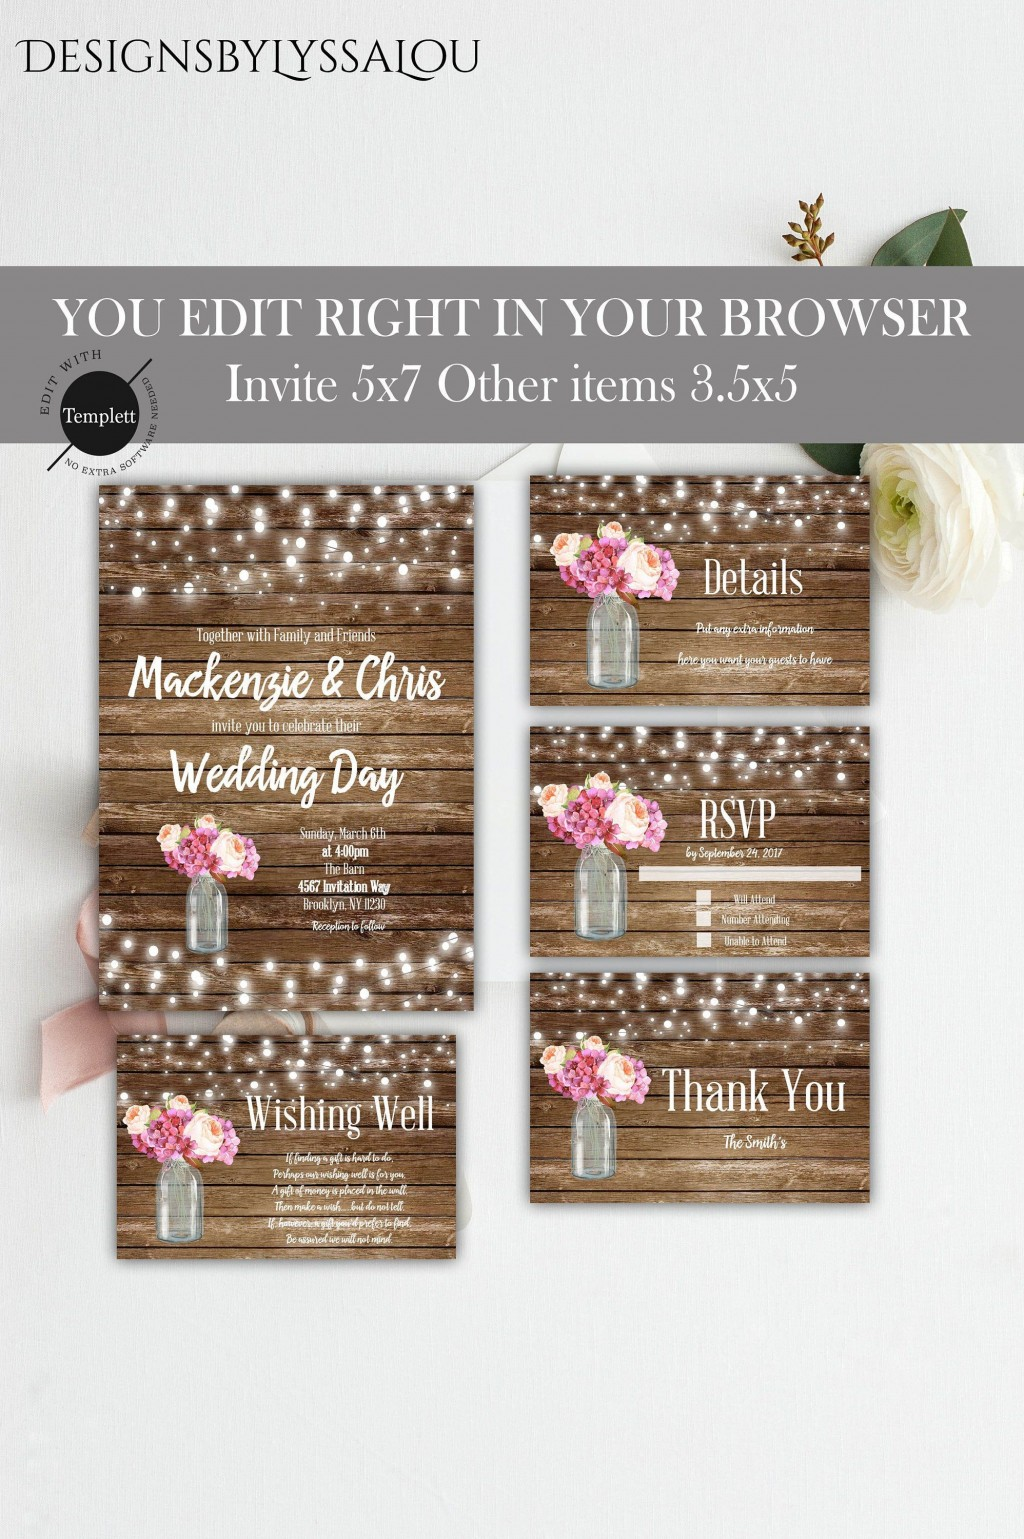 007 Stirring Rustic Wedding Invitation Template Design  Templates Free For Word Maker PhotoshopLarge